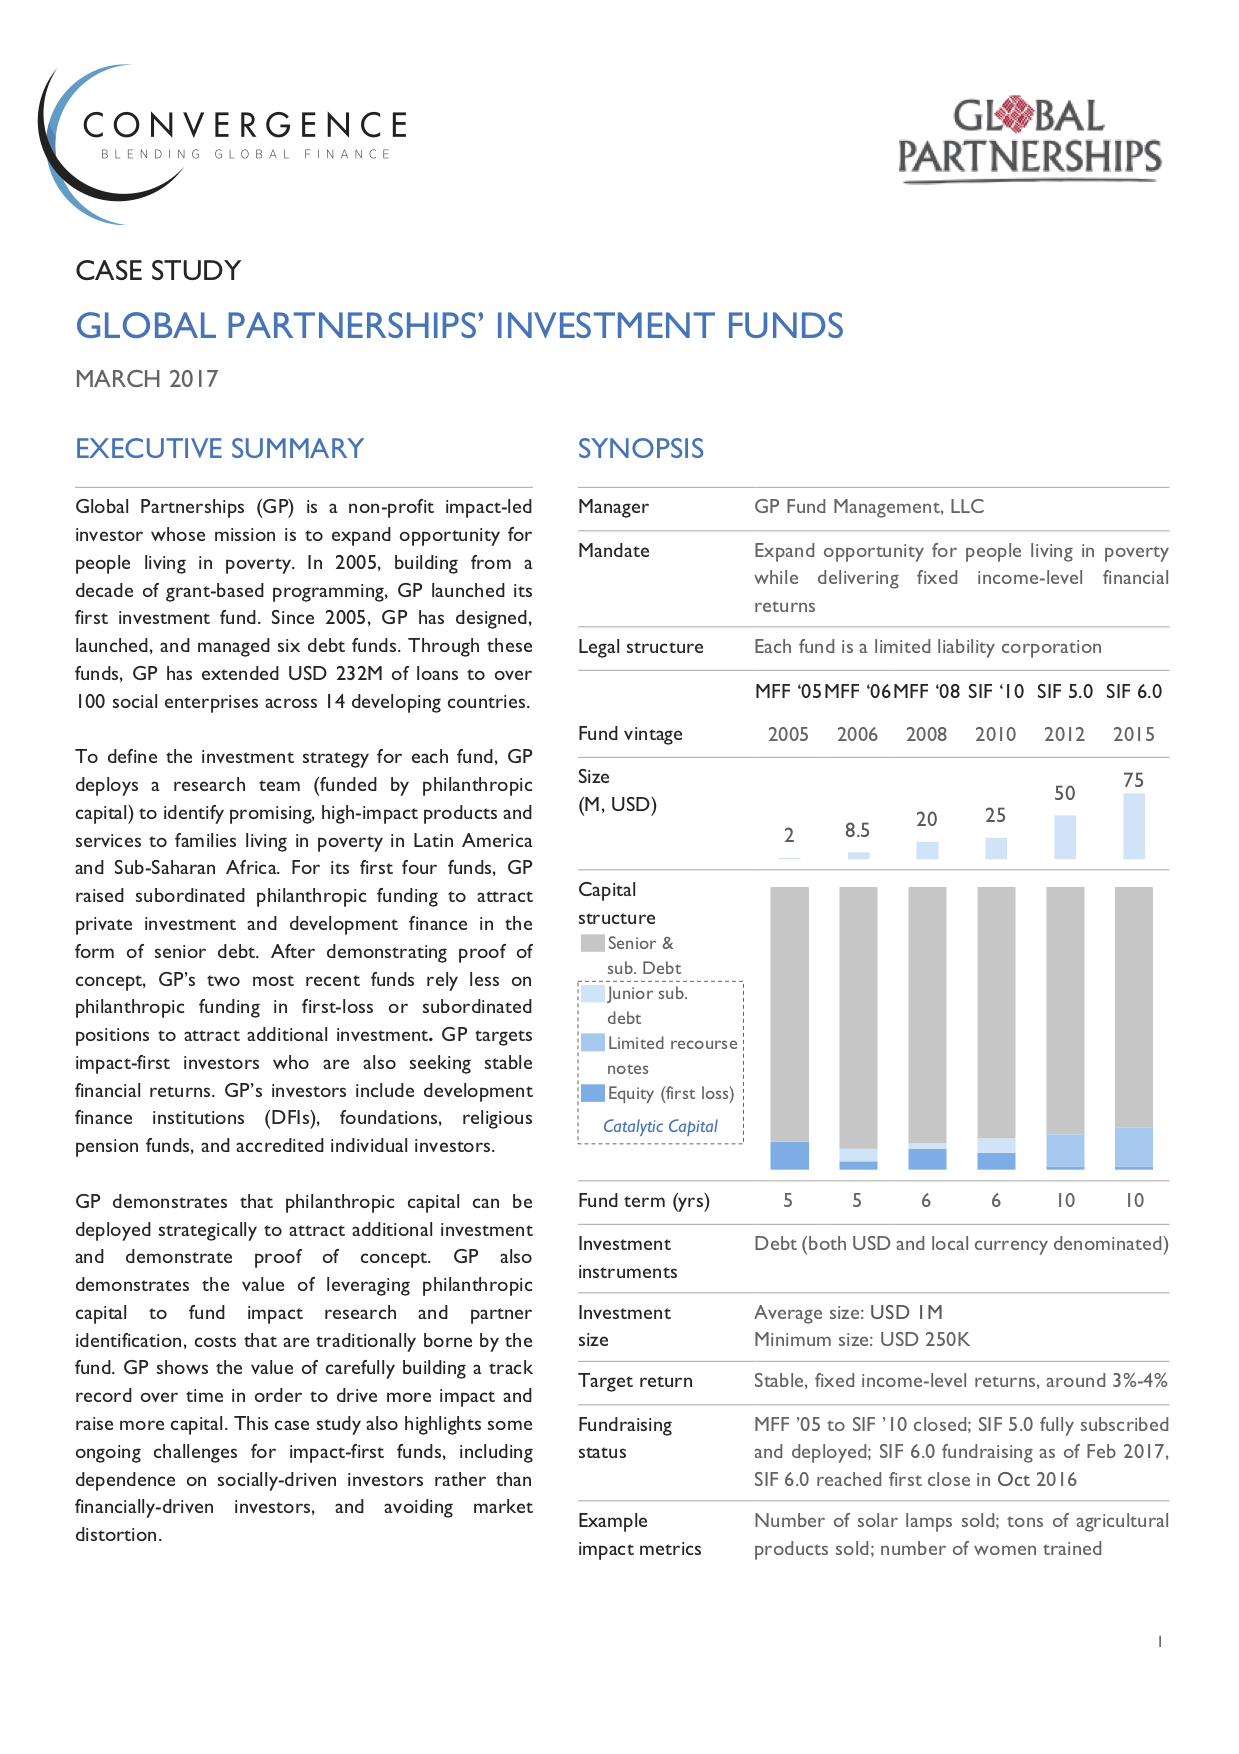 Global Partnerships' Investment Funds Case Study